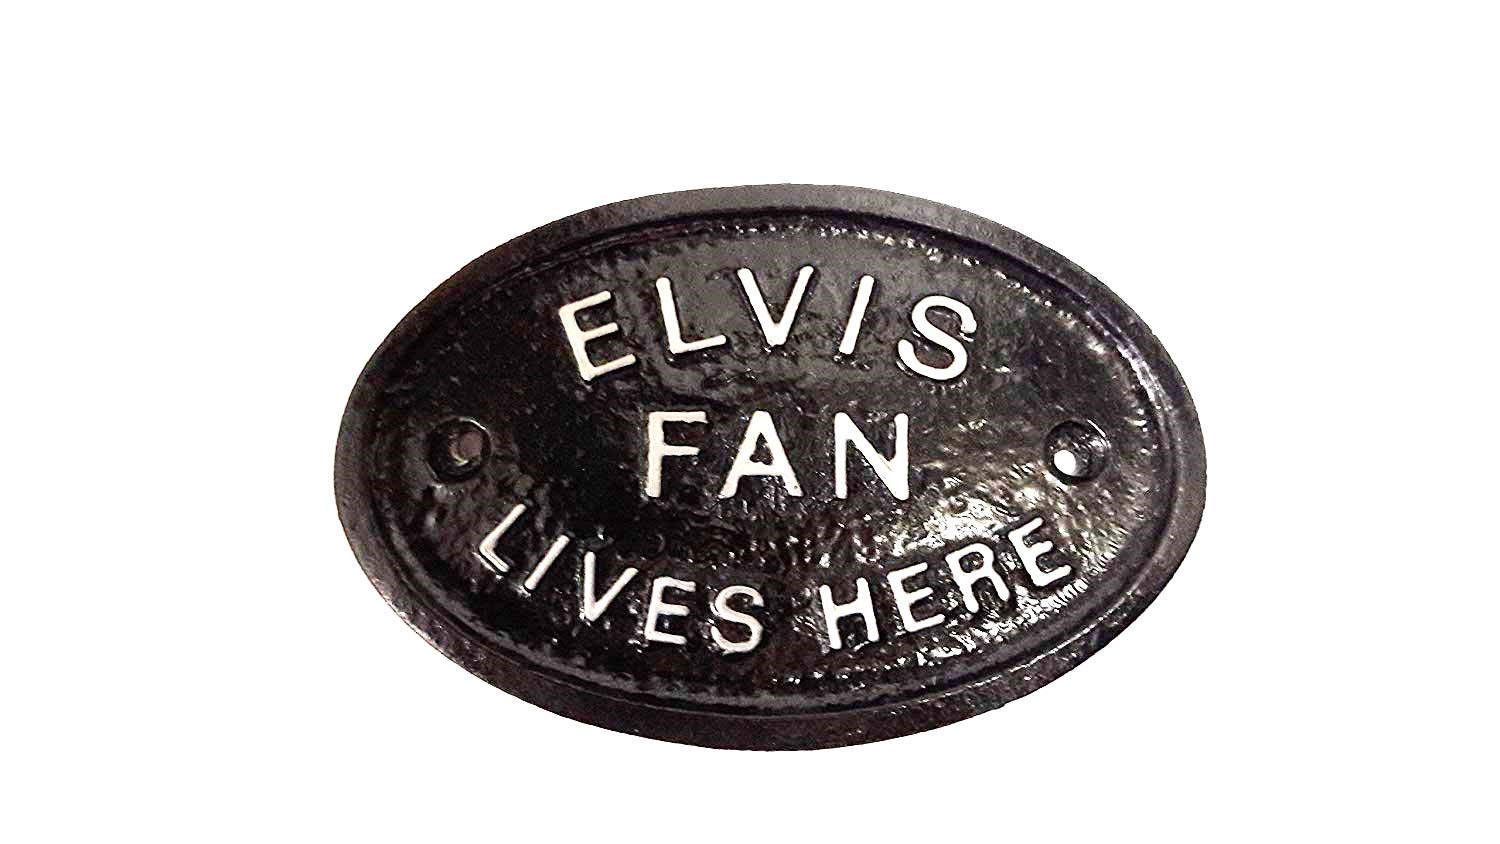 SilverElvis Fan Lives Here Wall or Fence Garden Plaque/Sign with Silver Raised Lettering Home Works